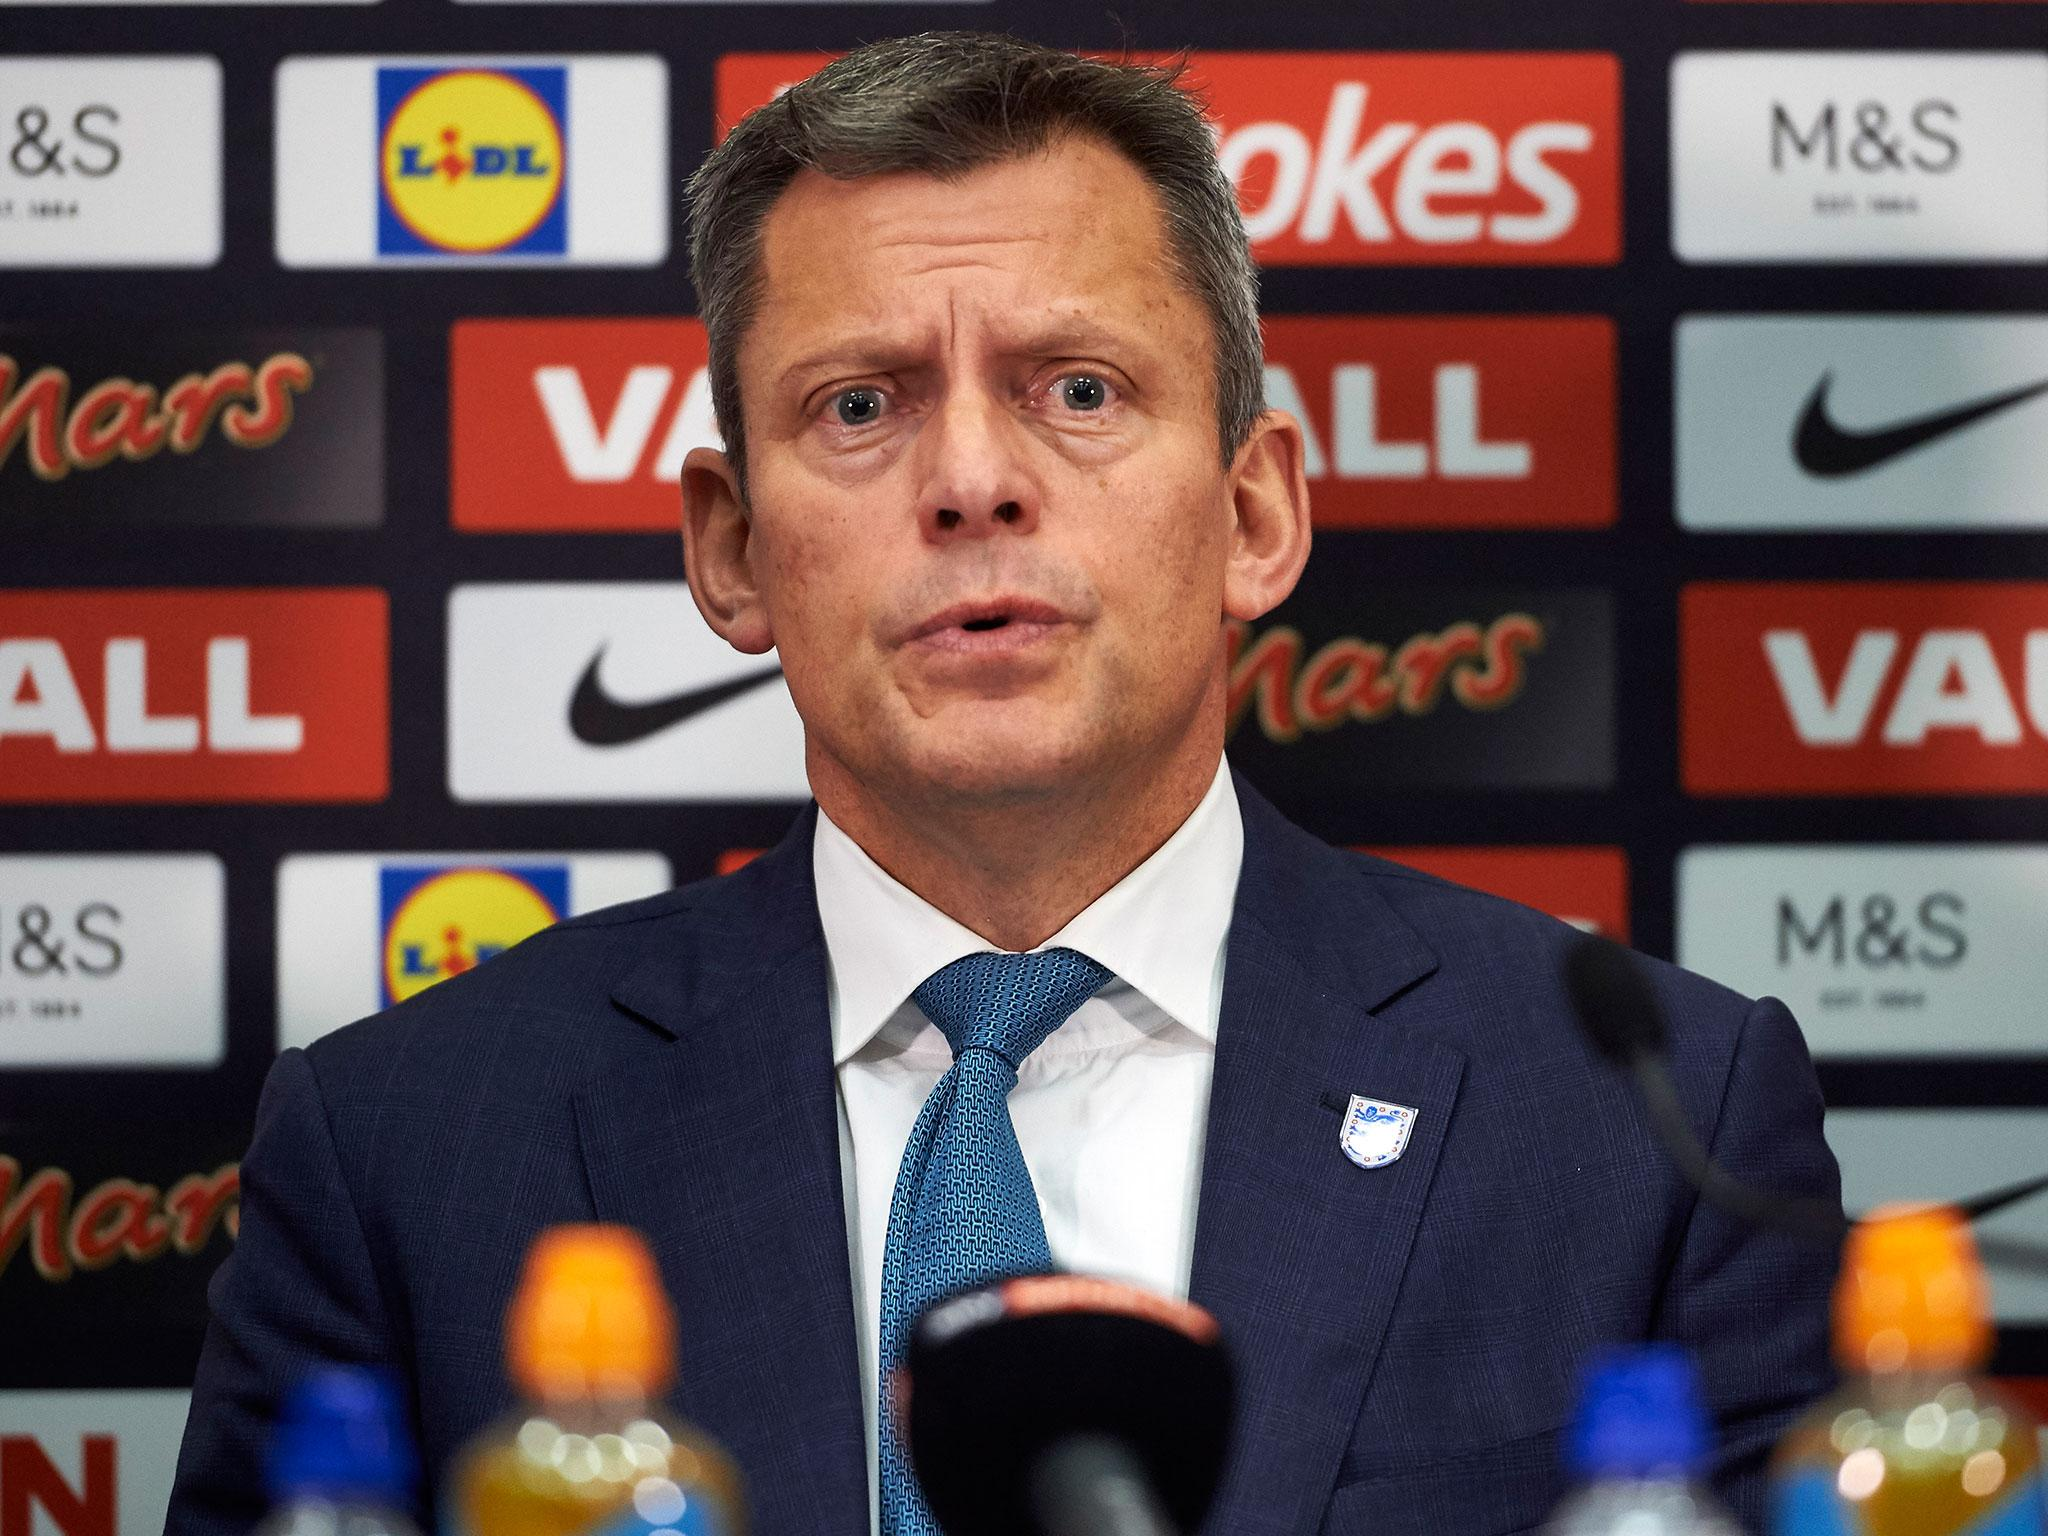 FA chief executive Martin Glenn under fire after claiming women are less tolerant of 'banter' than men